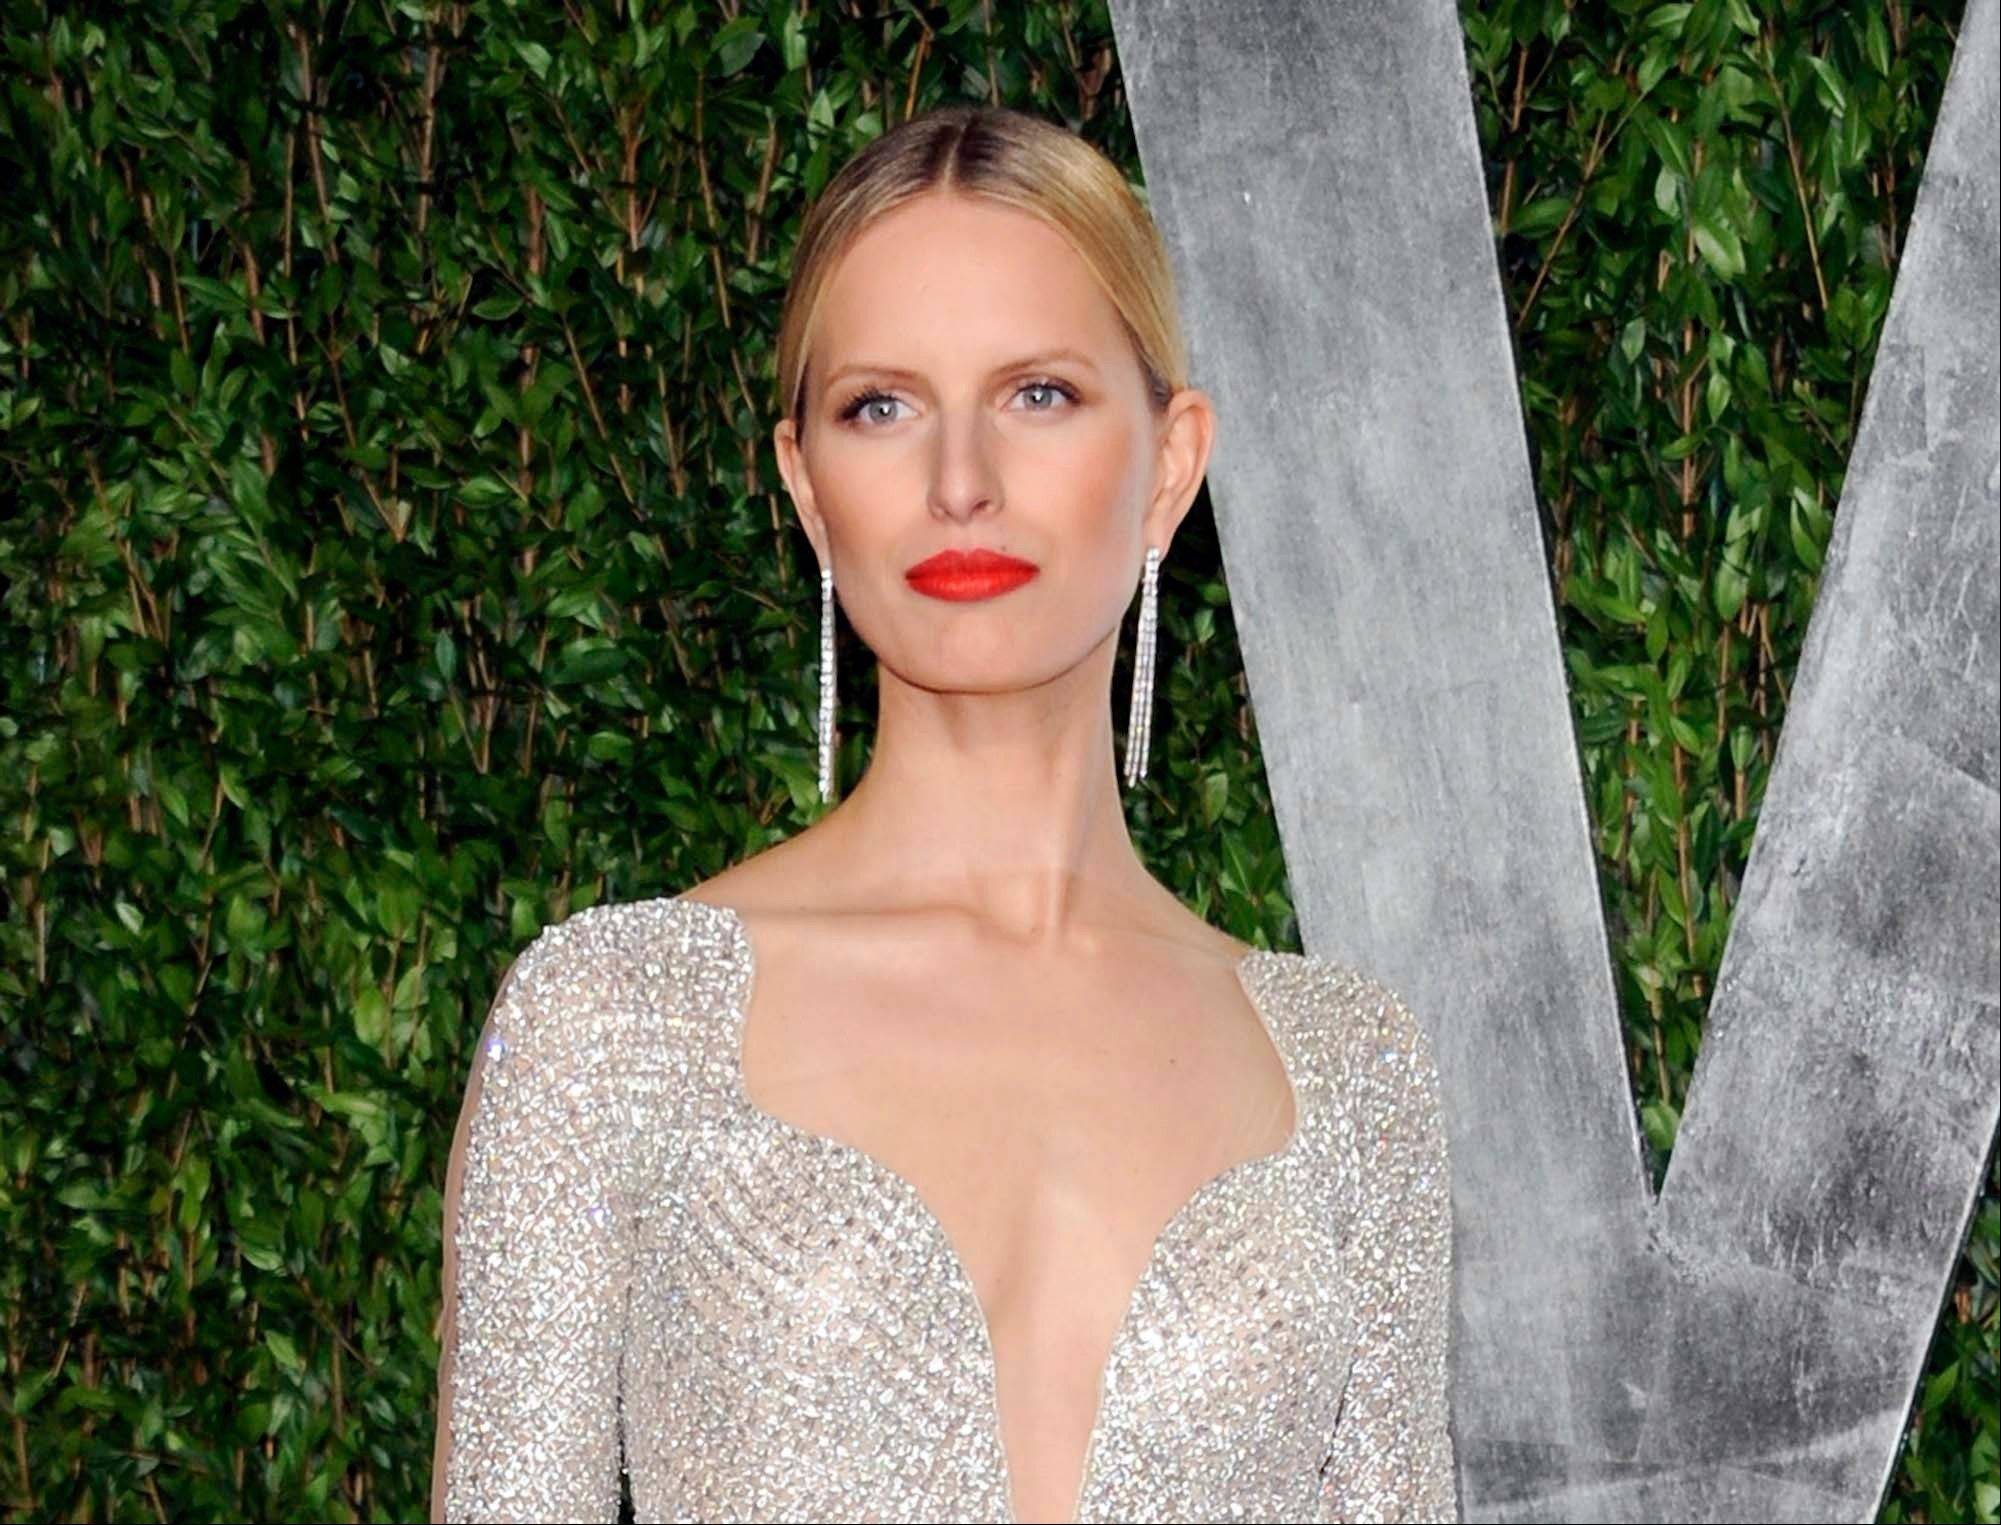 Oxygen Media announced that 28-year-old Karolina Kurkova will be the third coach on the new reality competition for up-and-coming models, working alongside Naomi Campbell and Coco Rocha. Photographer Nigel Barker, the former judge from �America�s Next Top Model� will serve as host.